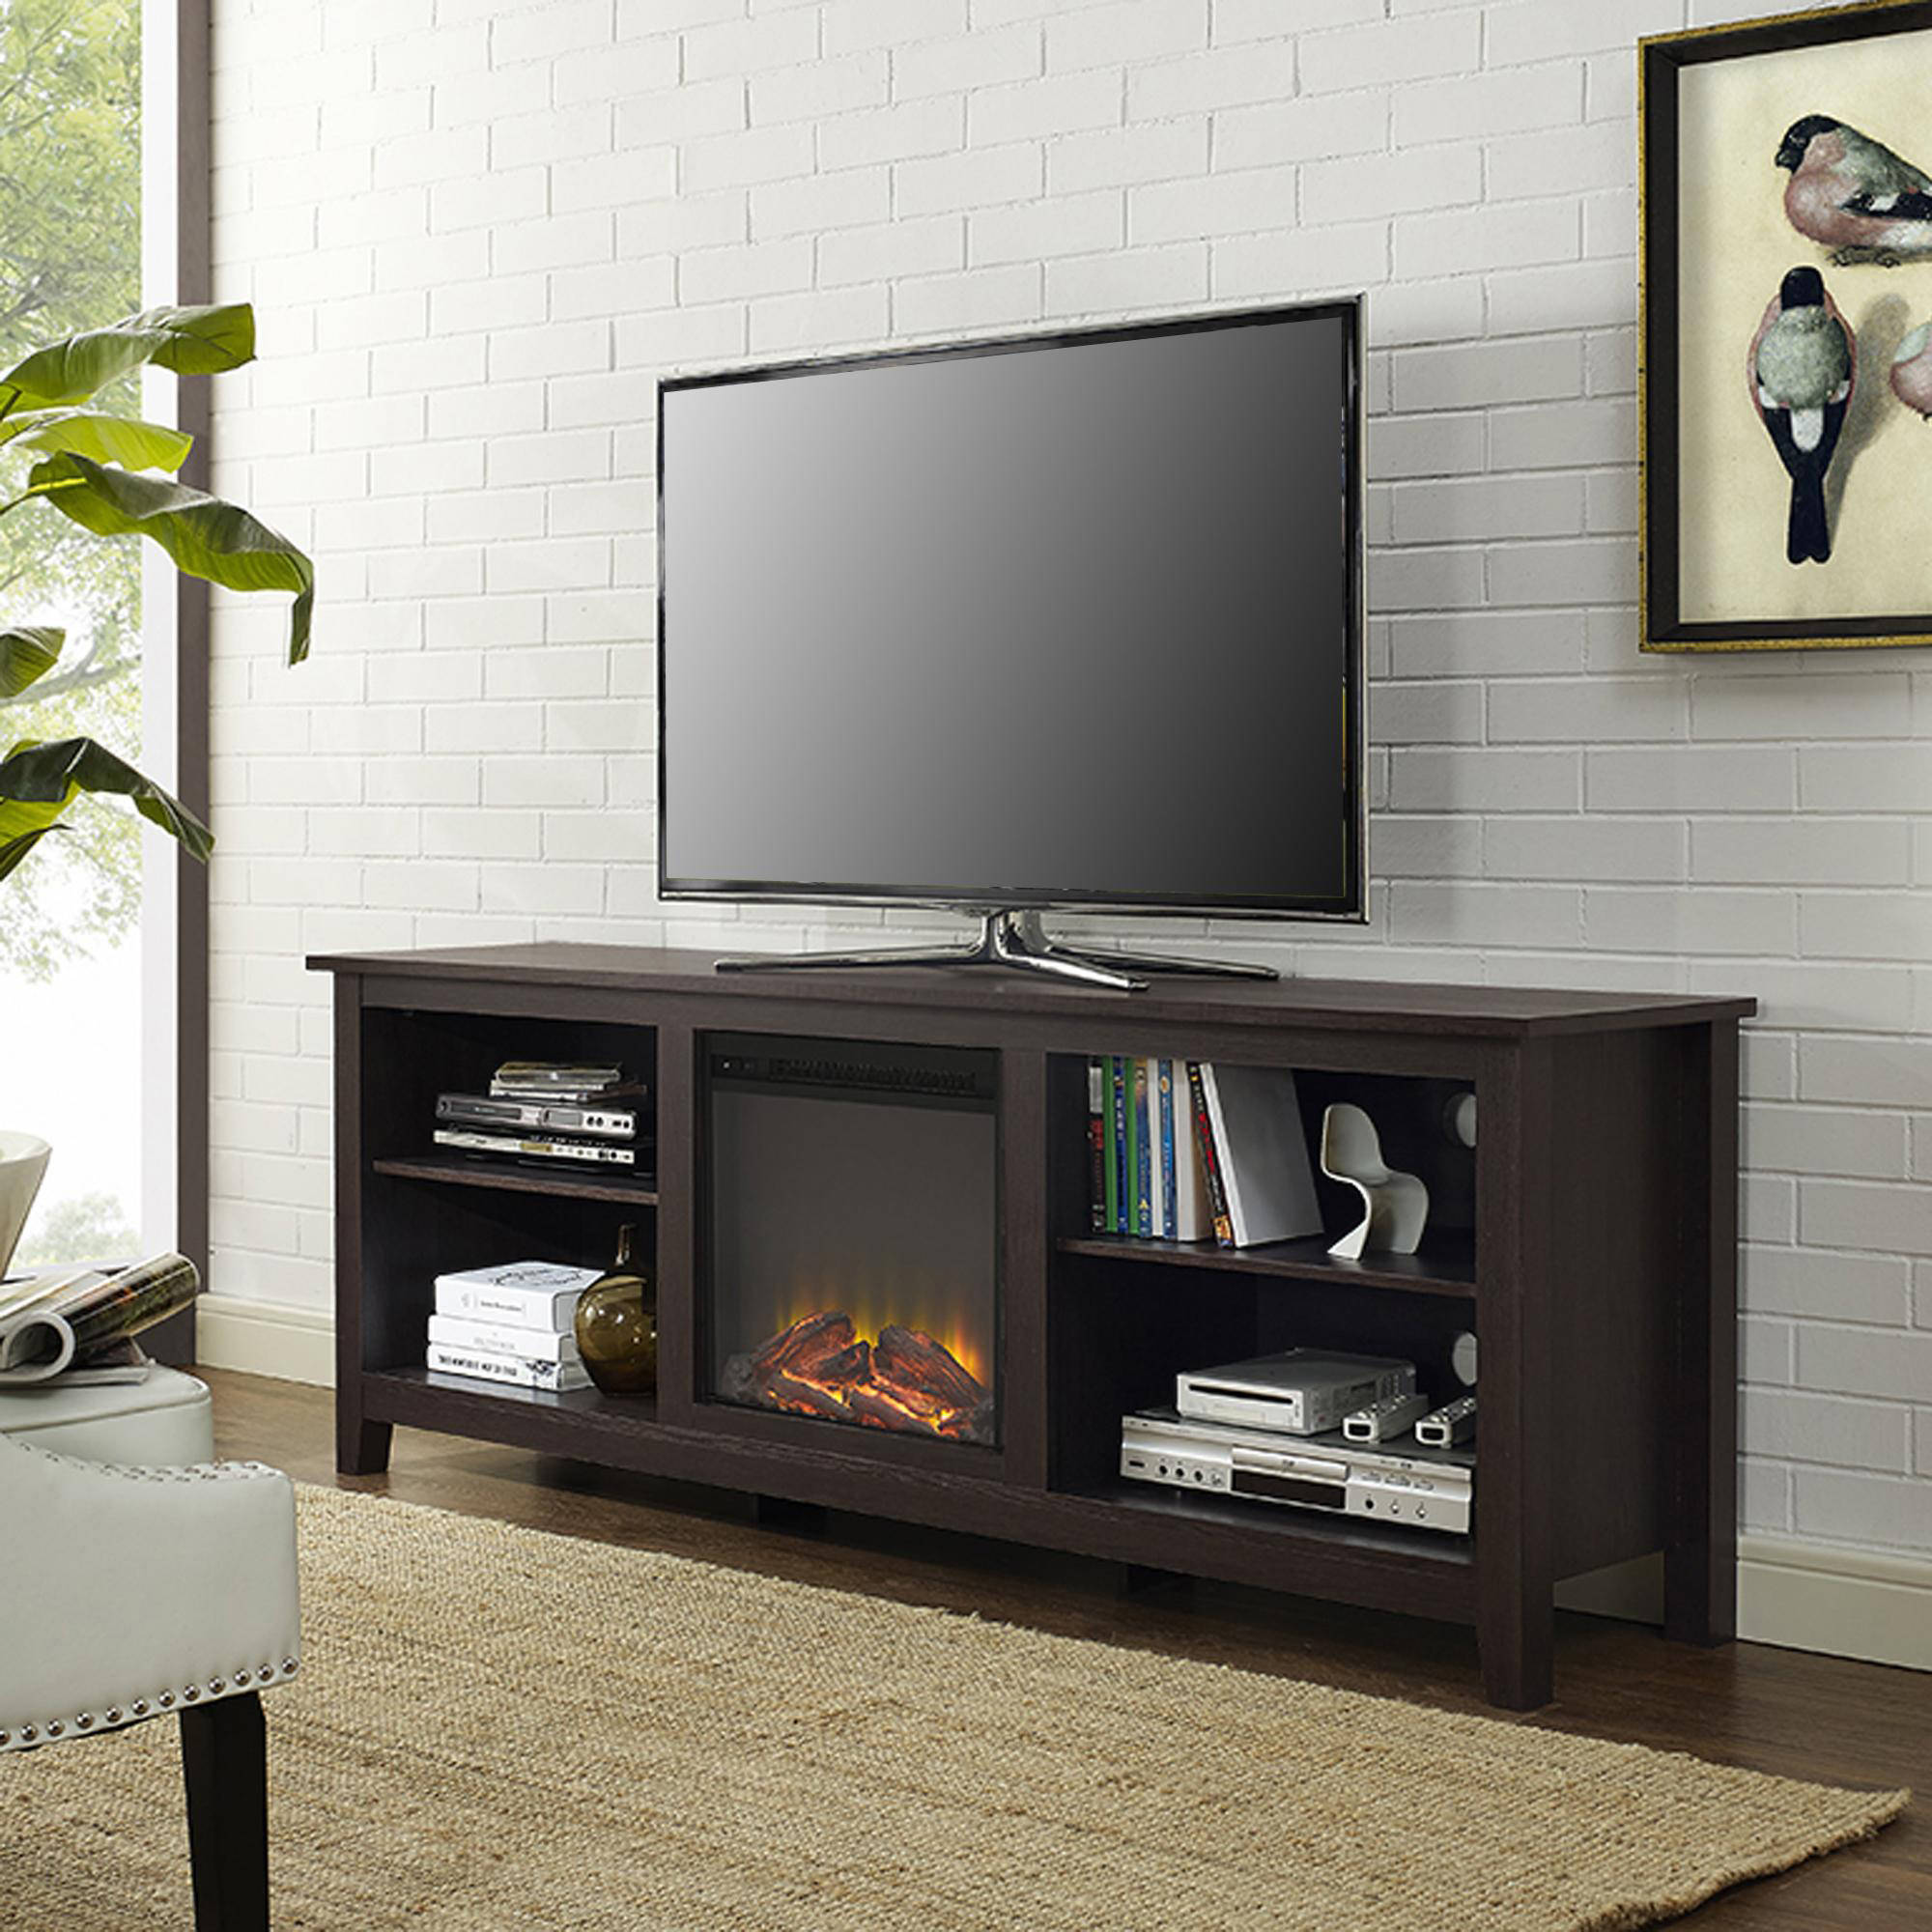 "Find great deals for We Furniture 70"" Wood Fireplace TV Stand Console Espresso Spy1000003190 UPC 814055021886. Shop with confidence on eBay!"